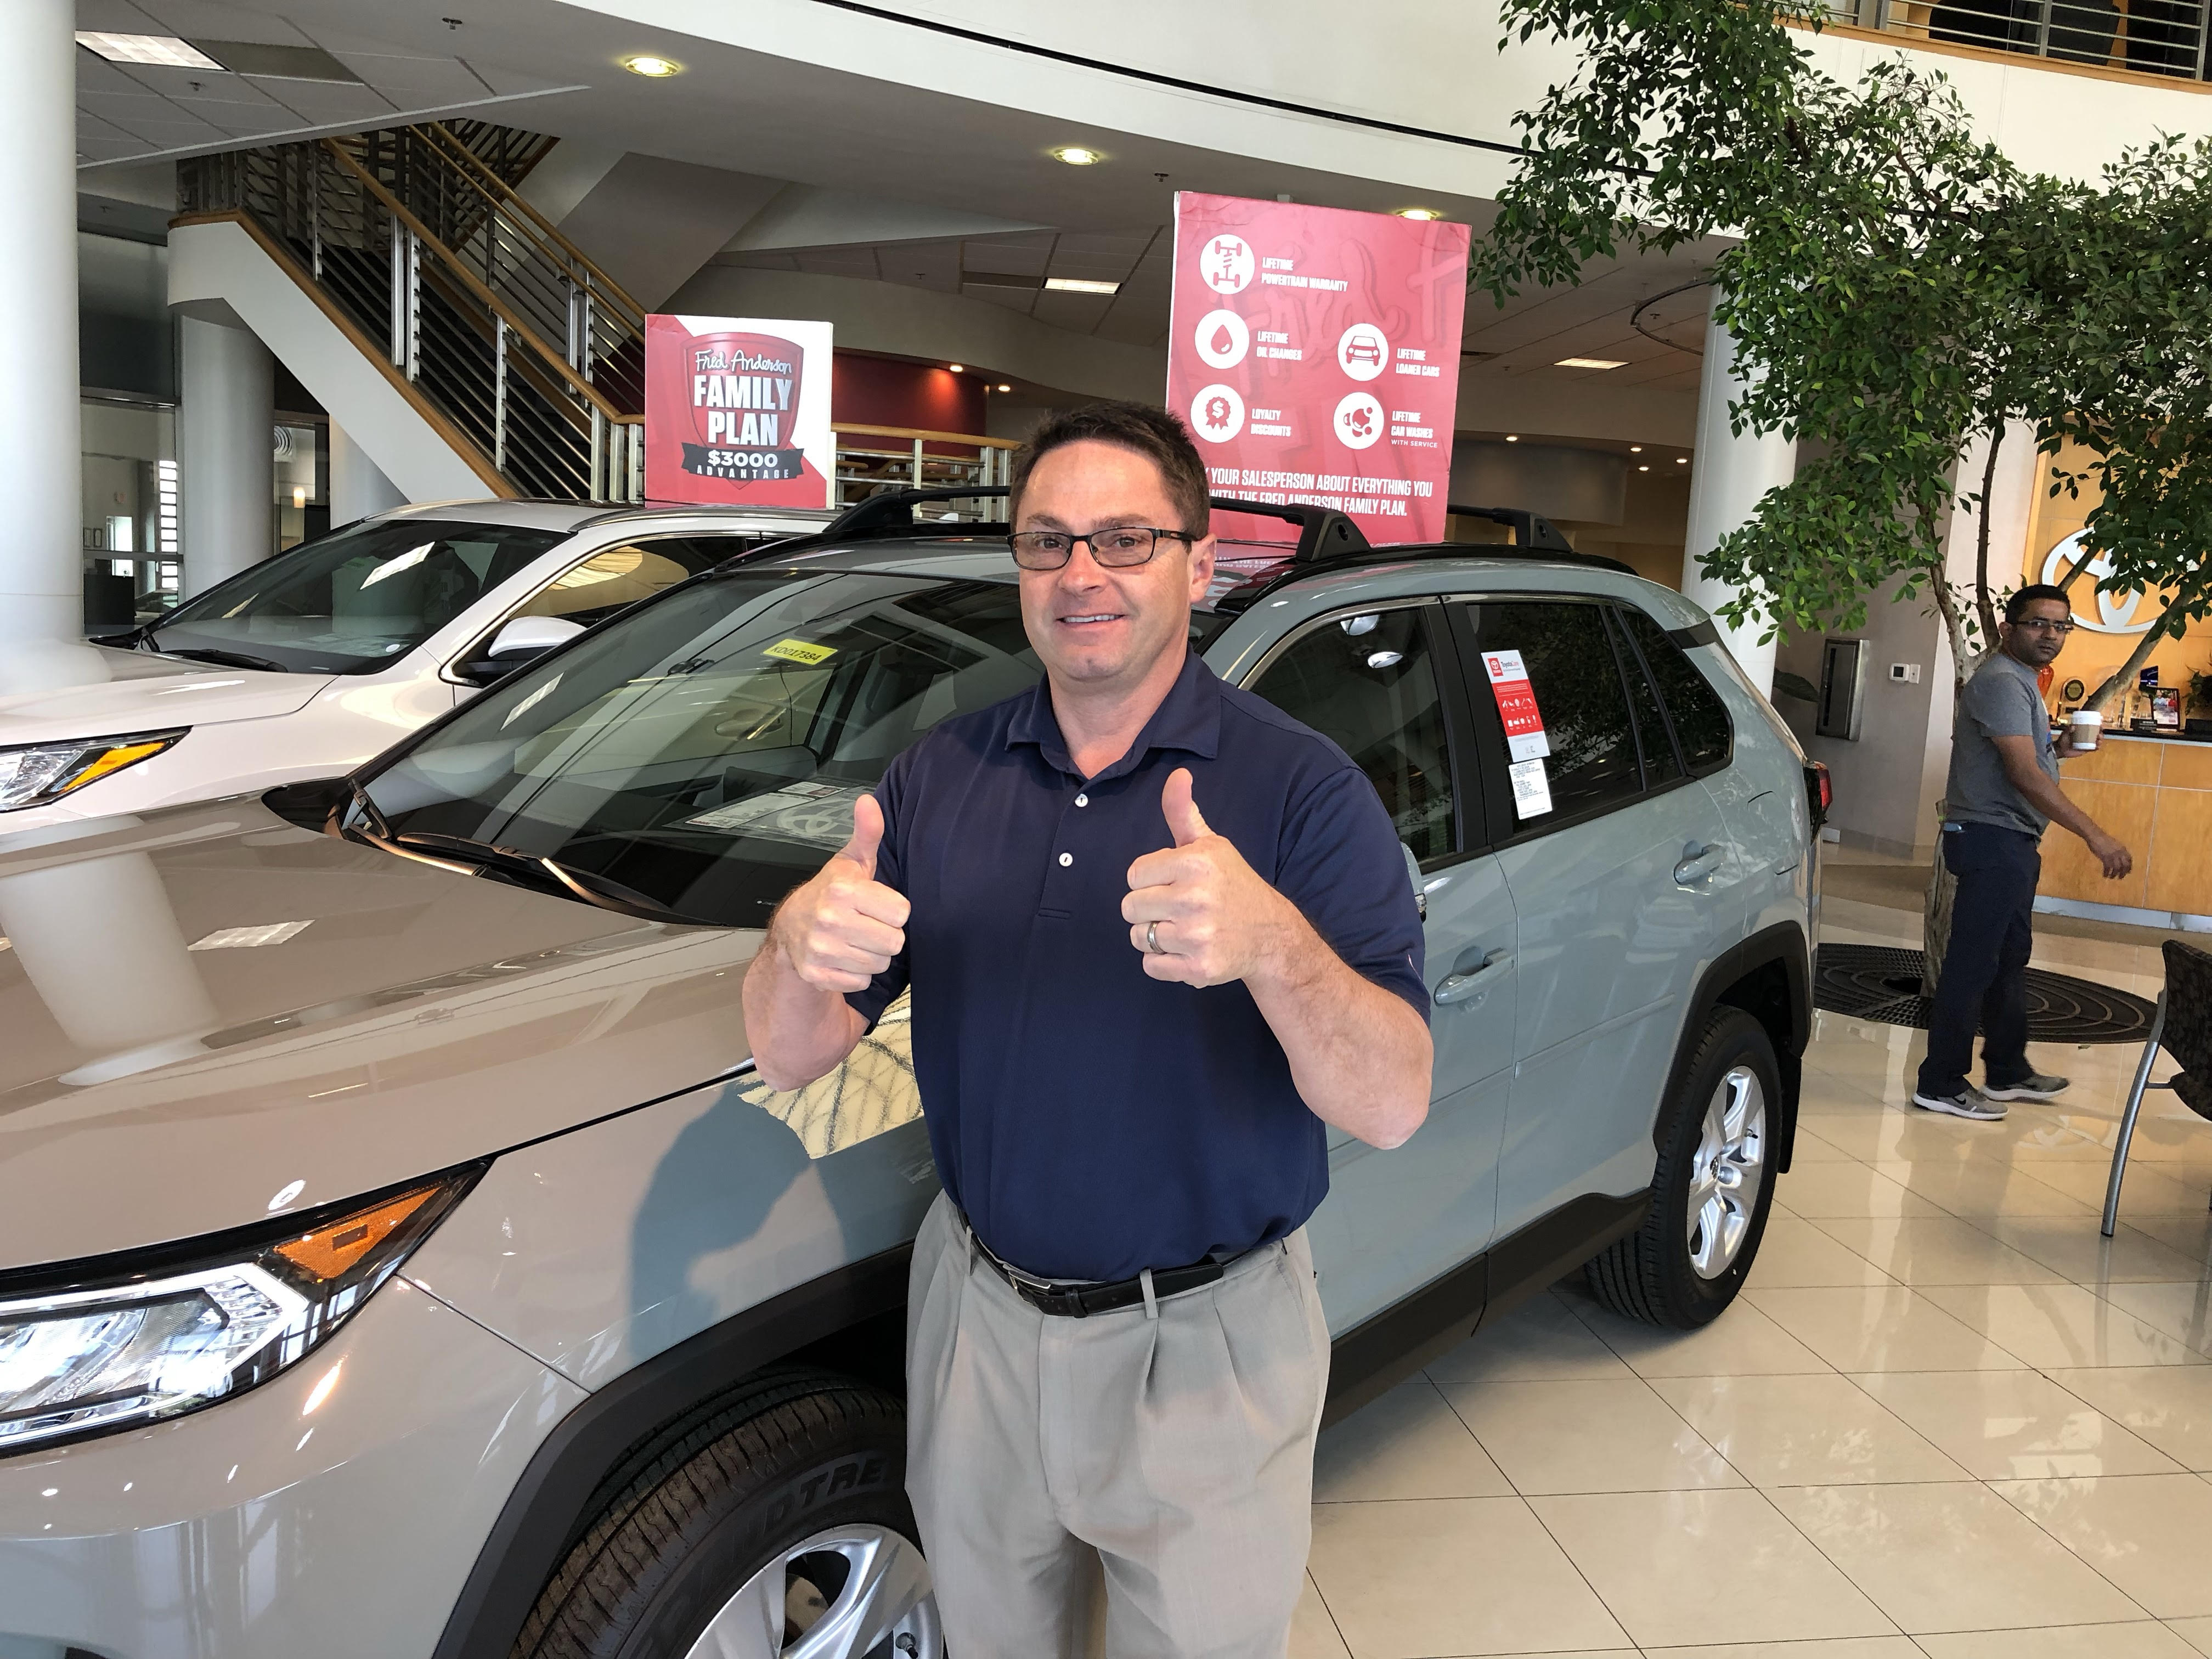 Toyota Jeff giving two thumbs up